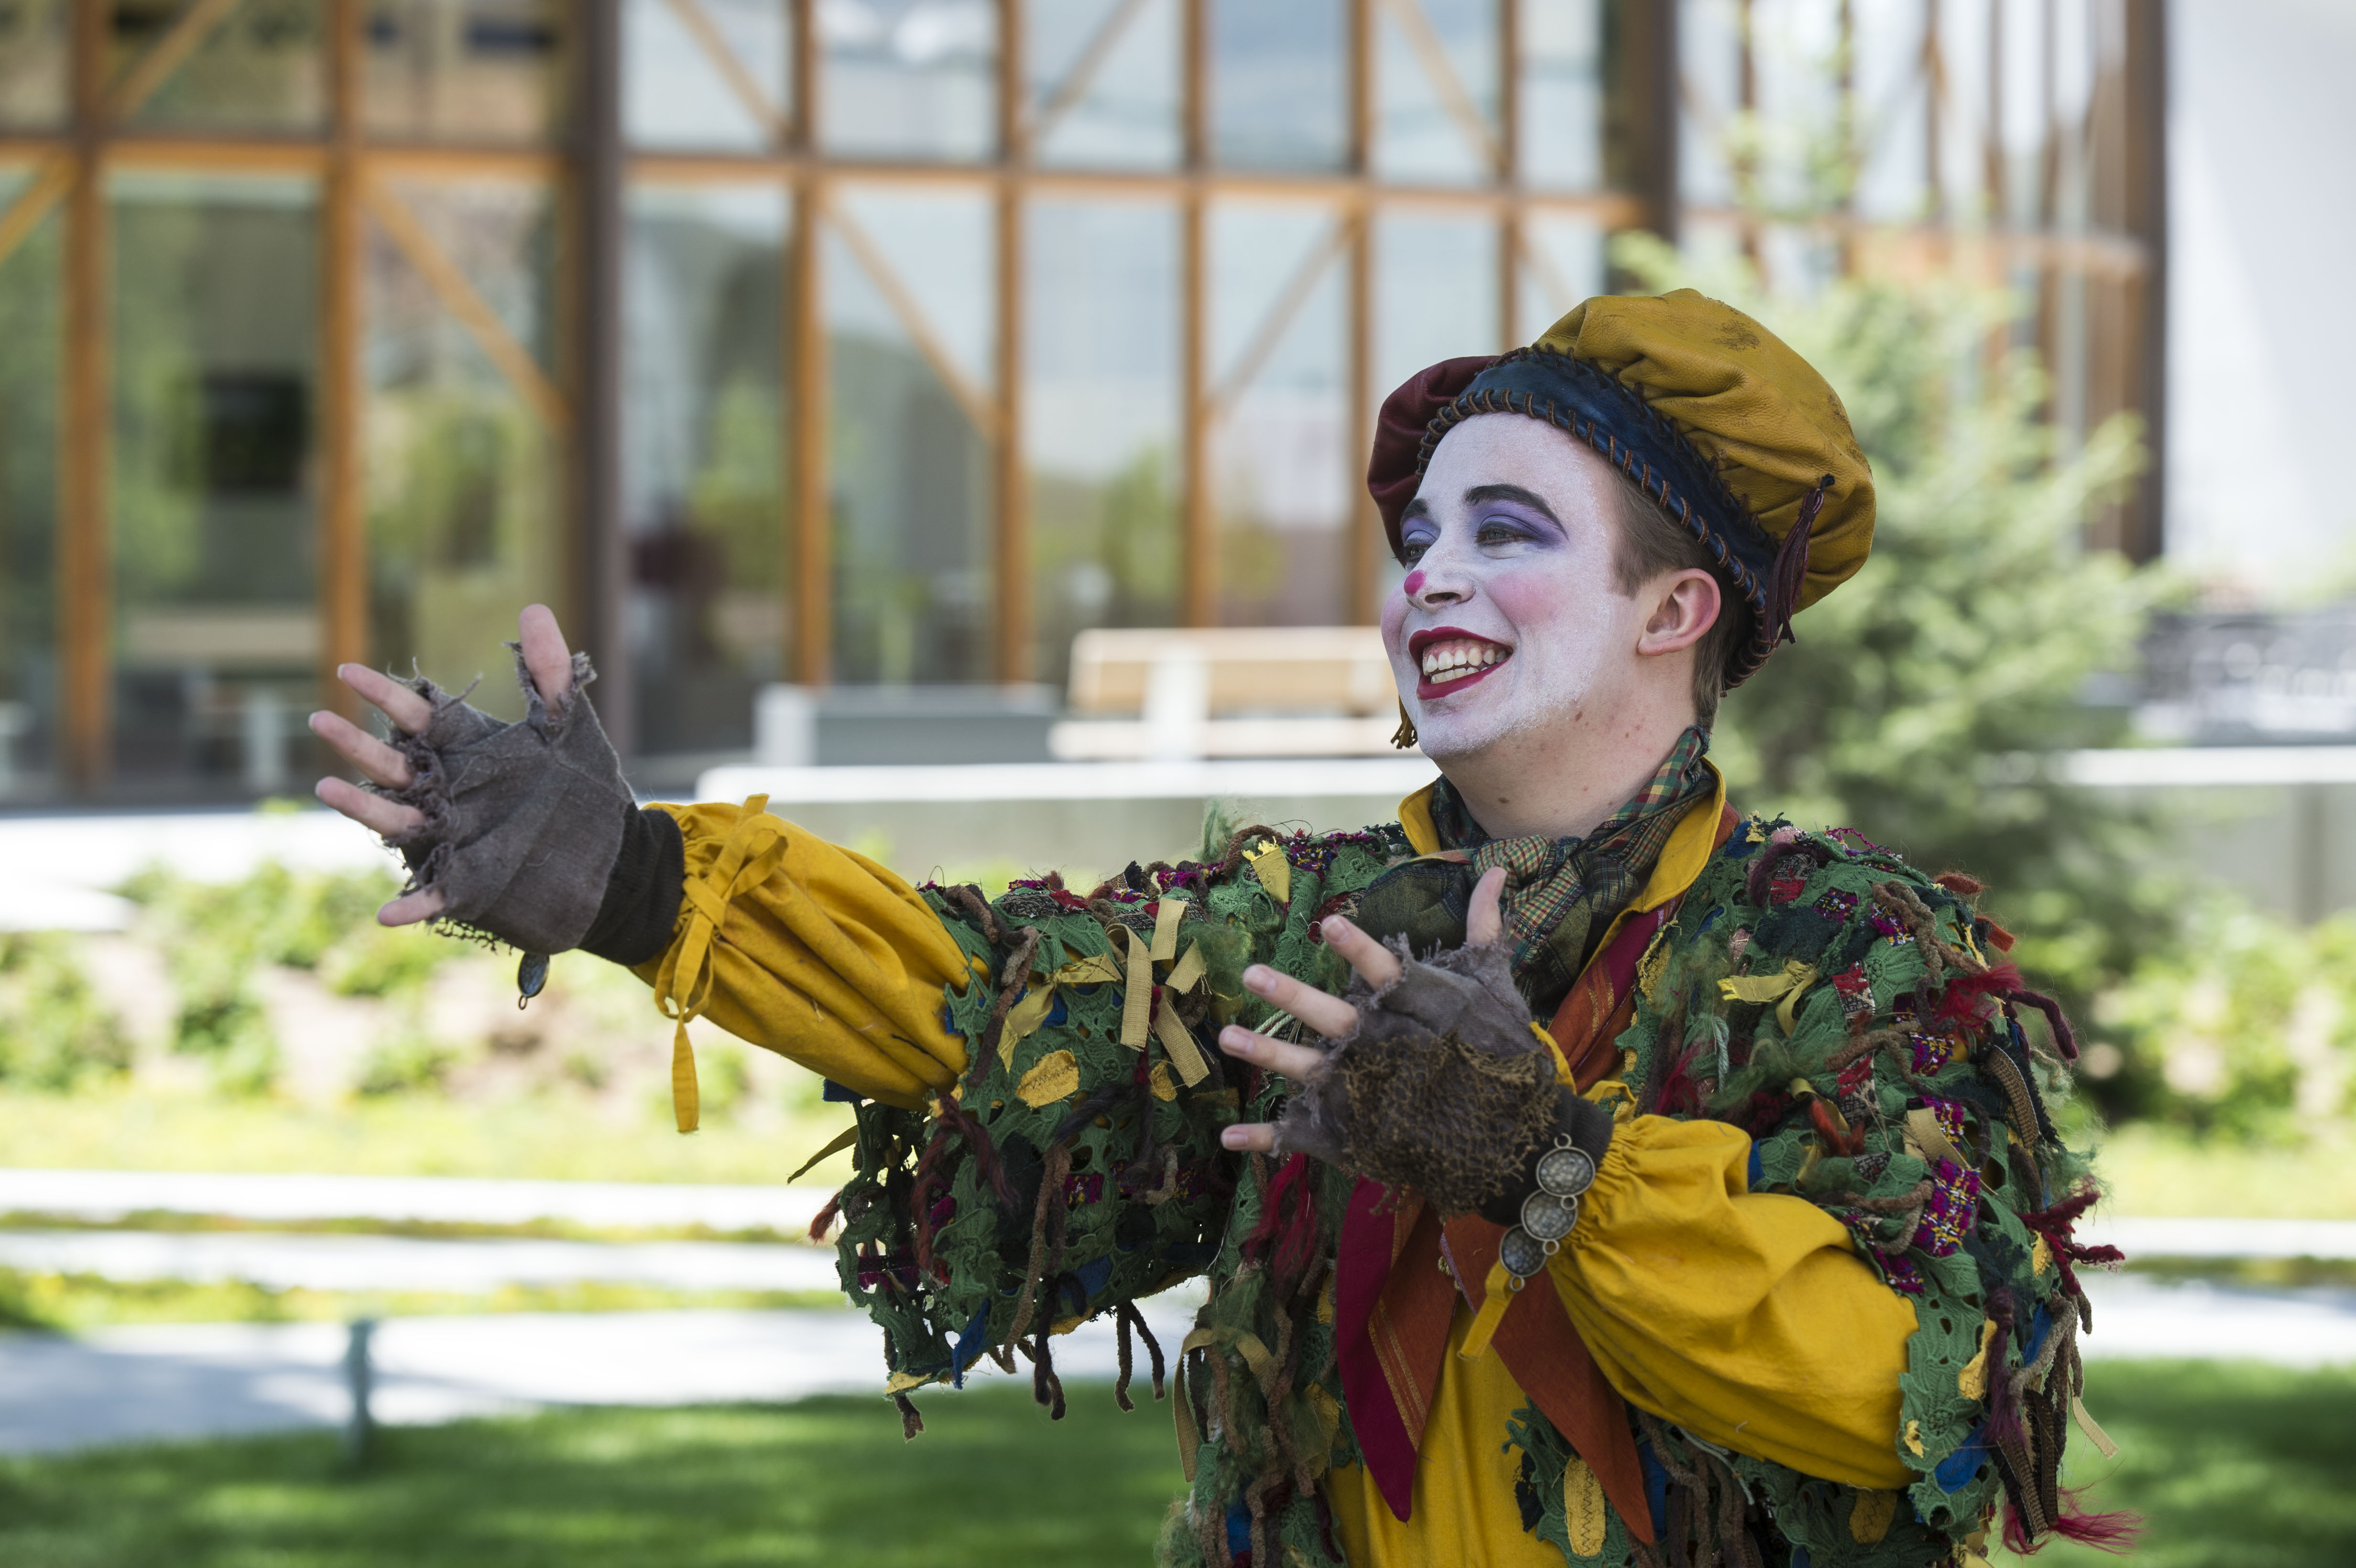 The Clown in The Greenshows